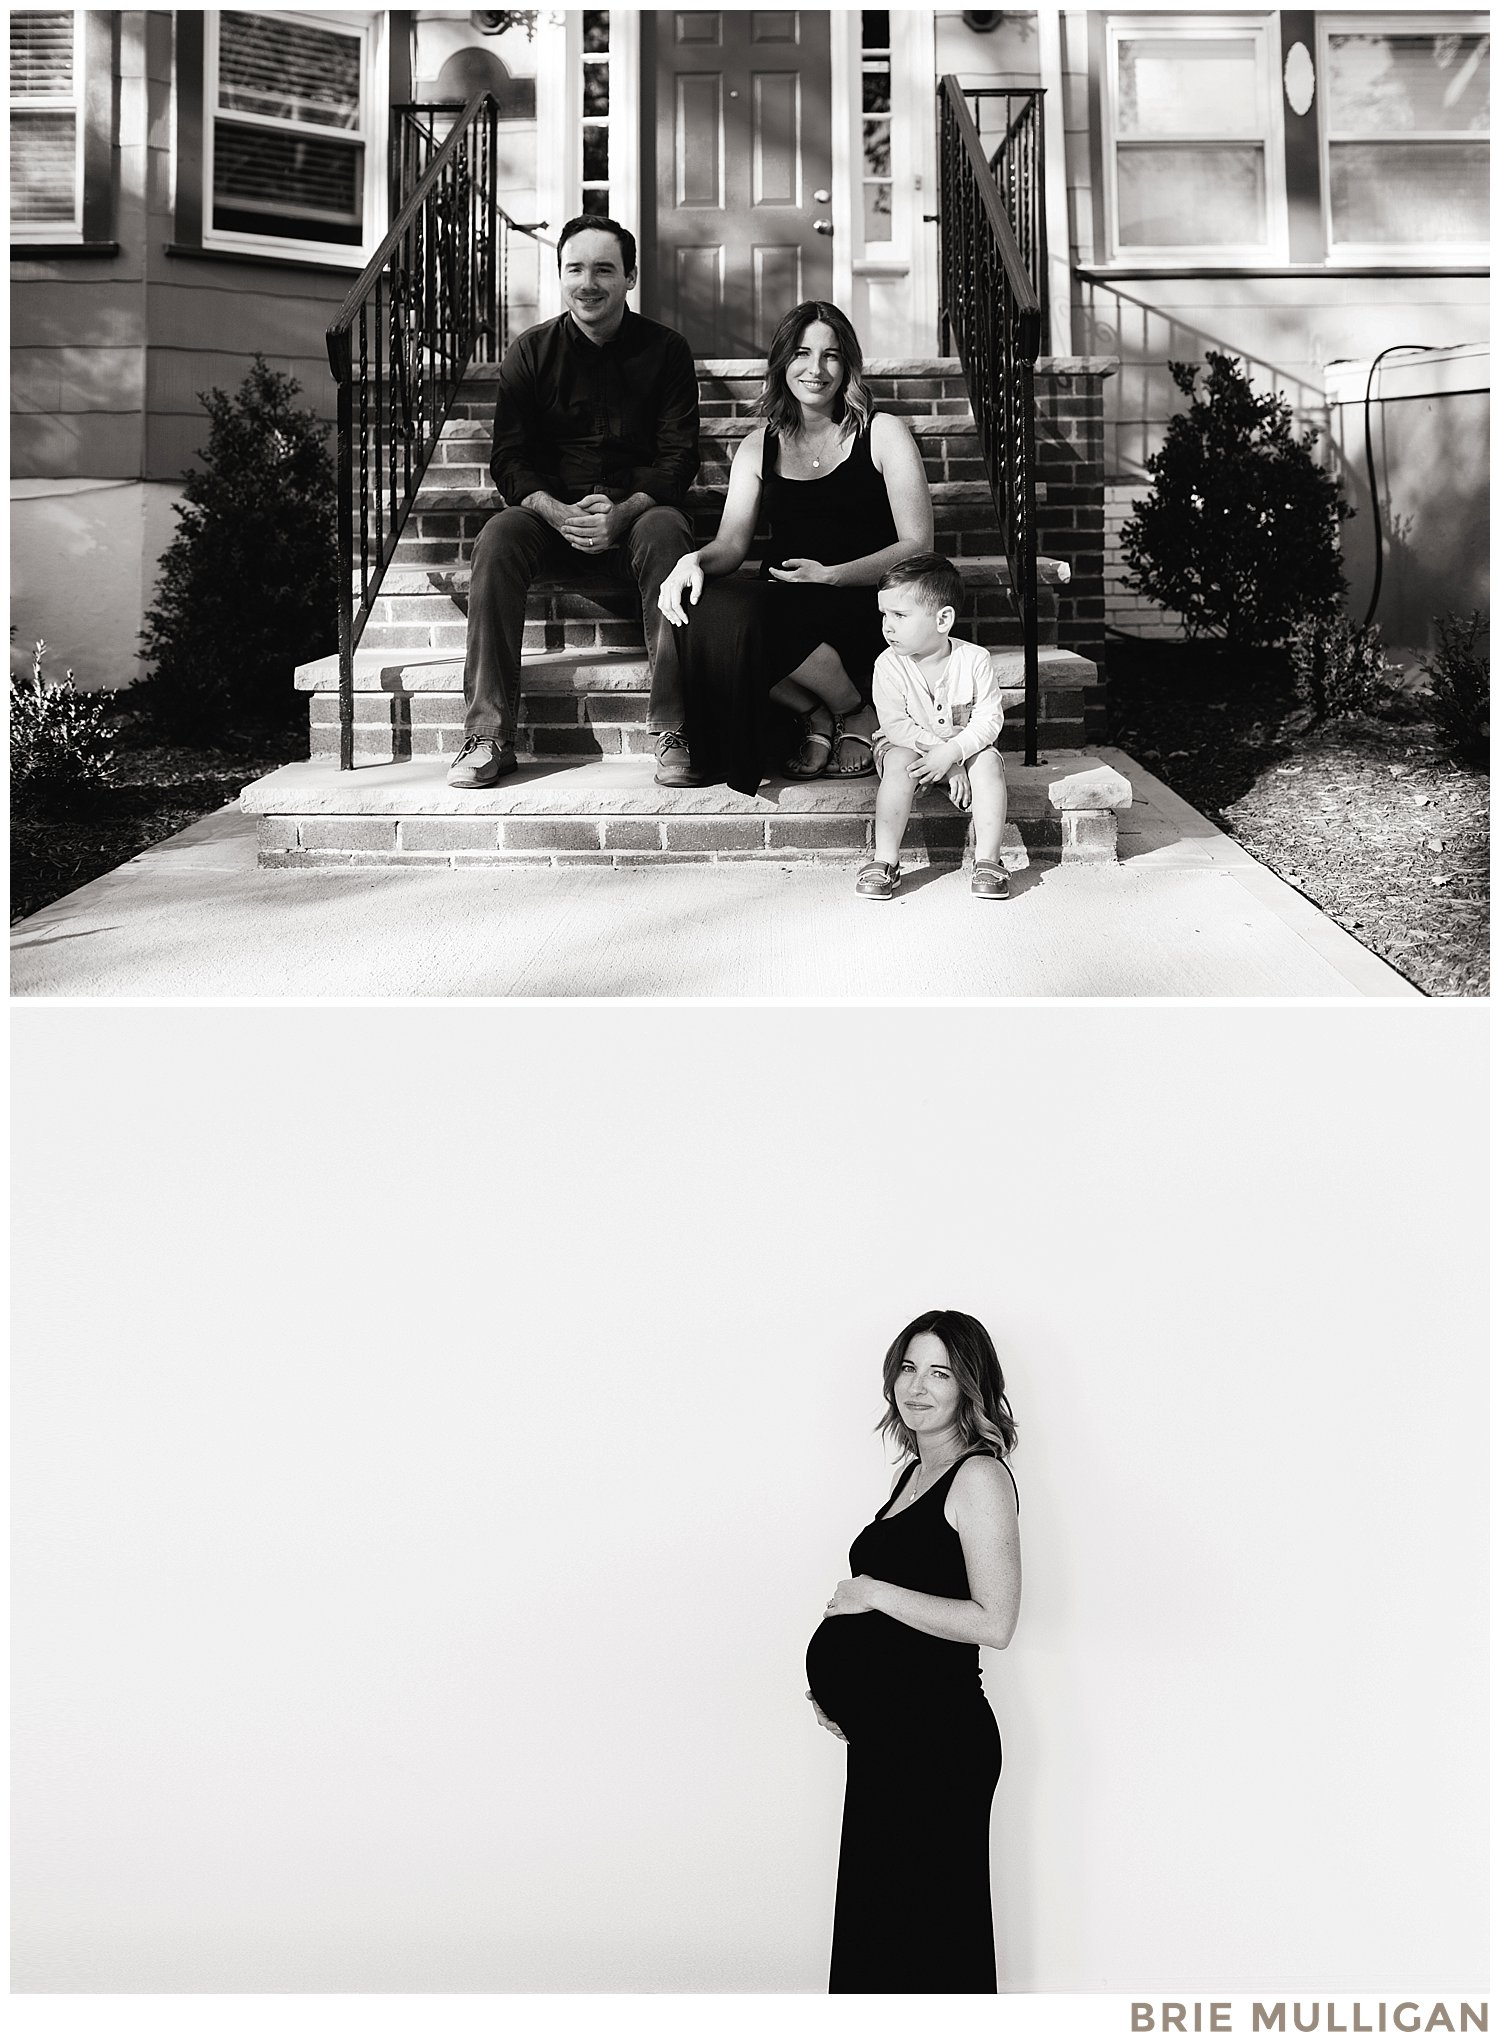 Brie-Mulligan-Family-and-Newborn-Photographer-Montclair-New-Jersey-Northern-NJ-Essex-County-and-NYC_0221.jpg